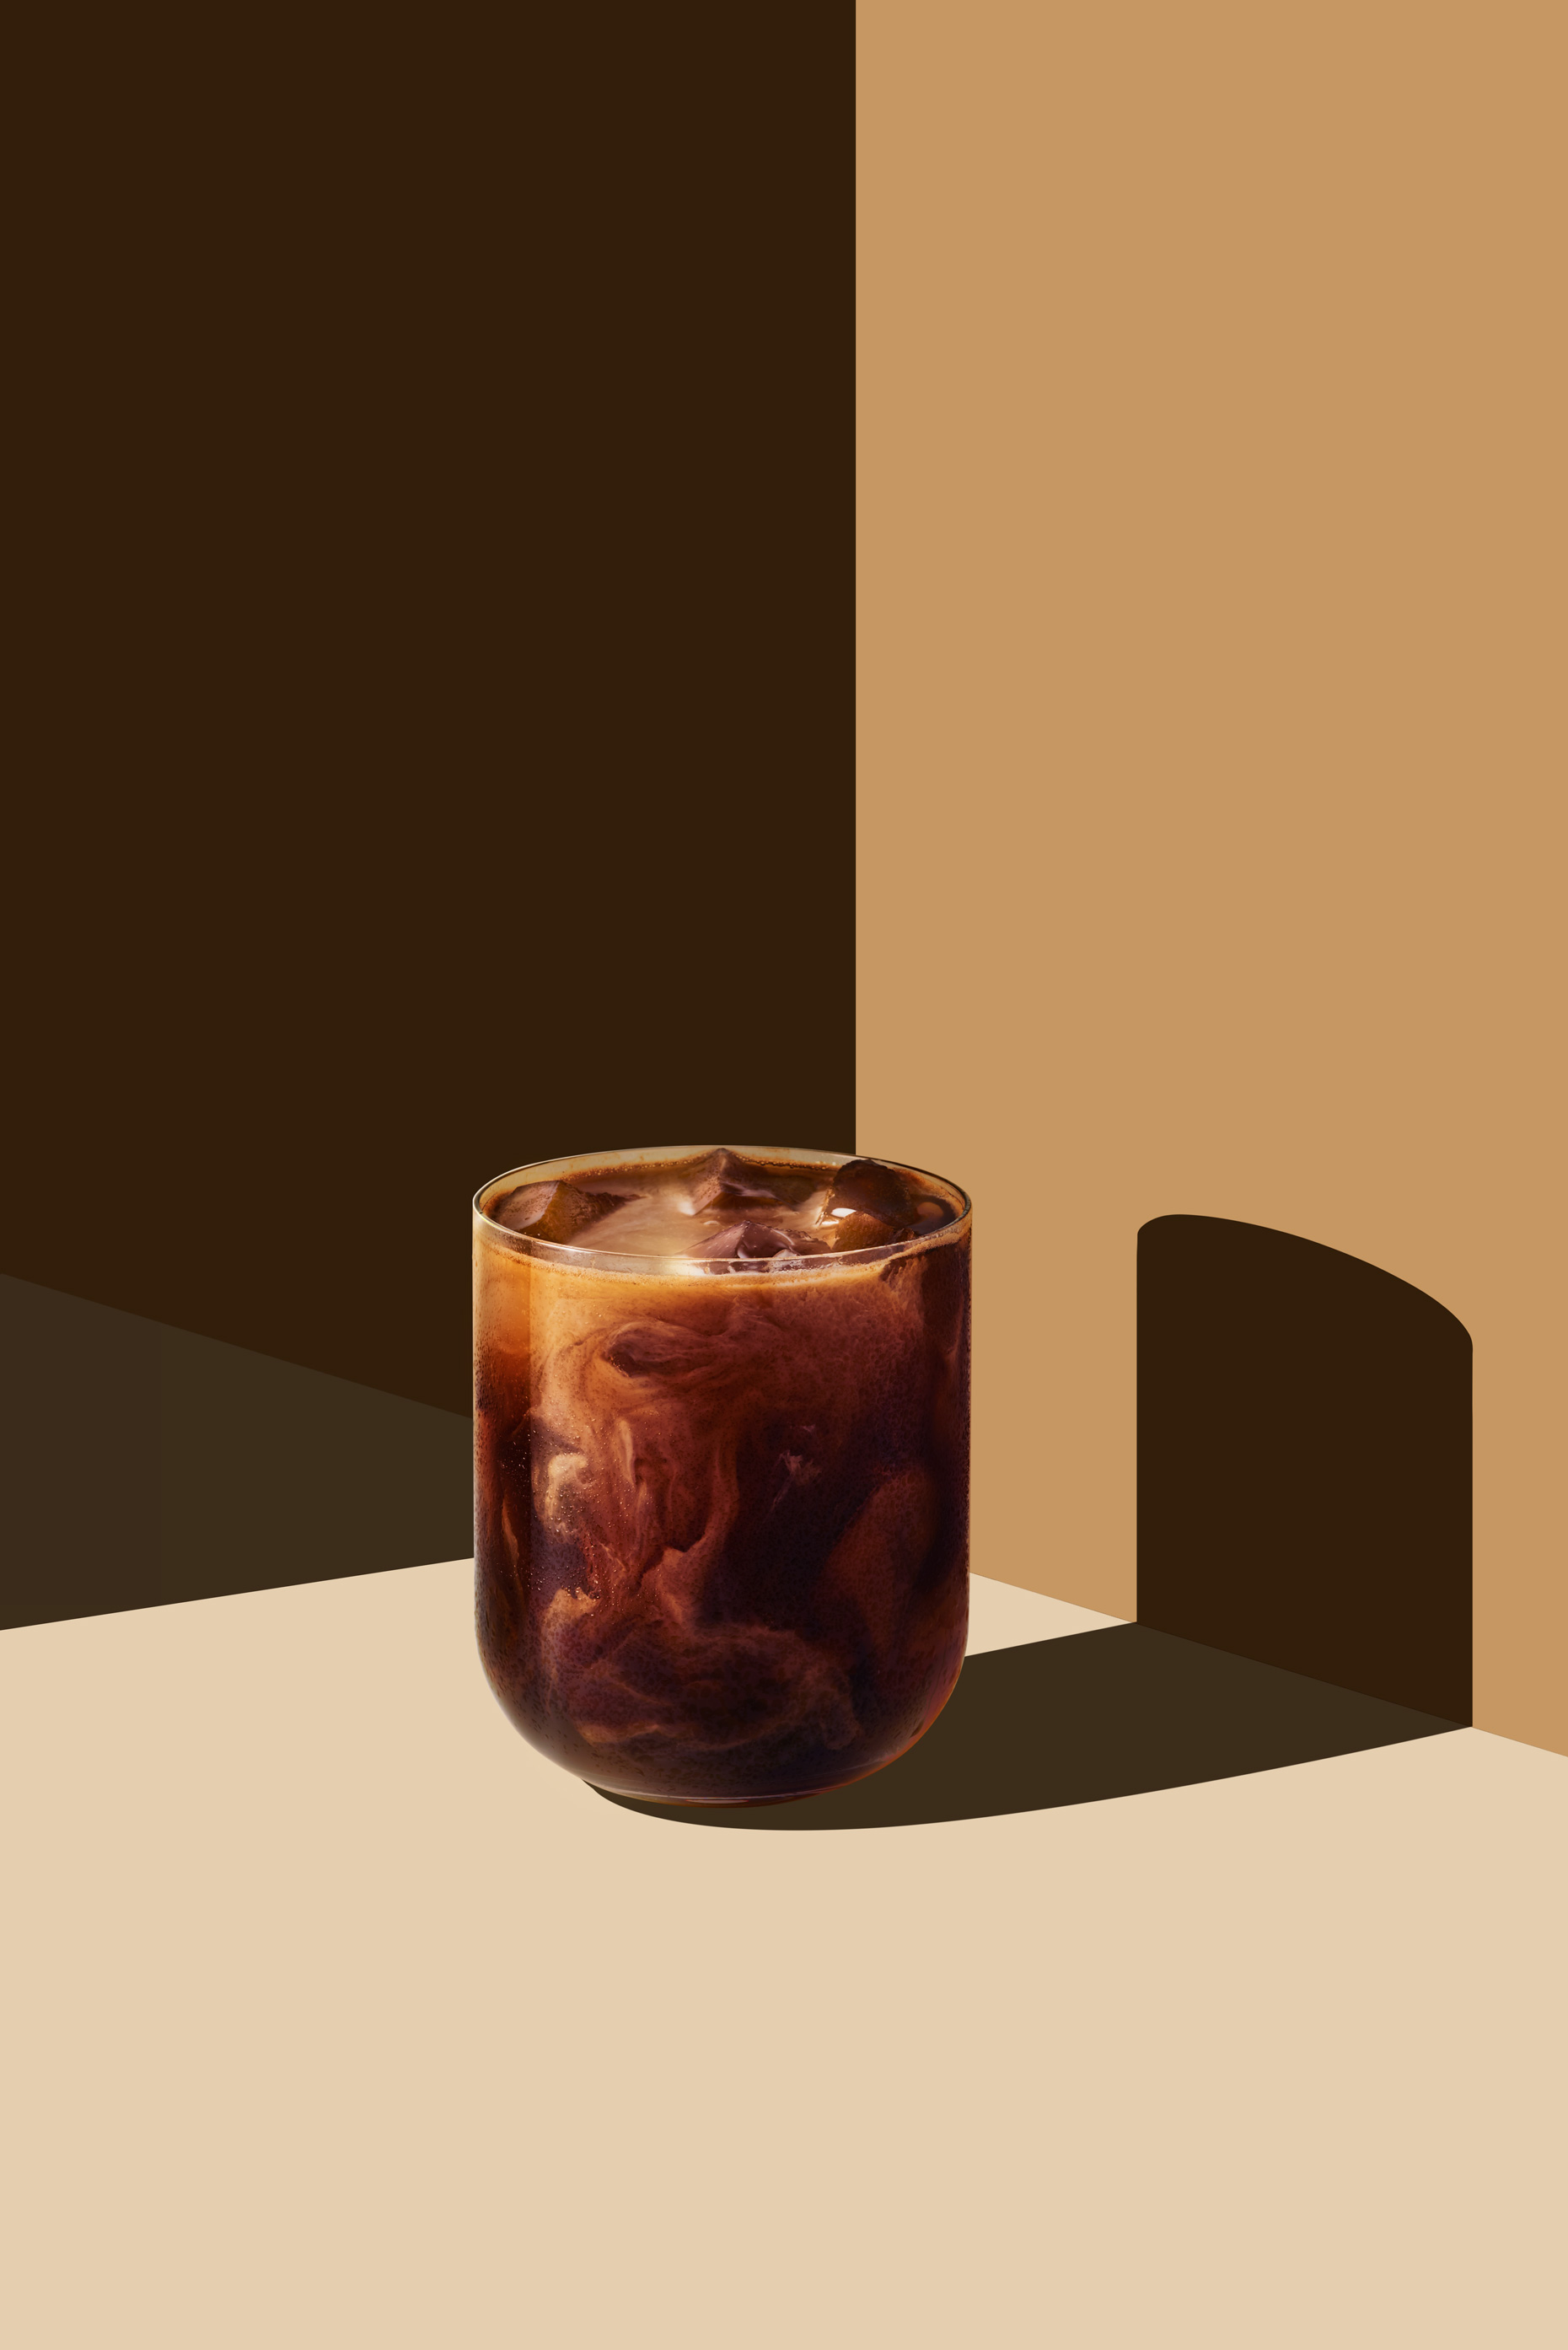 Iced coffee with milk swirls on colorful background, by Food and Beverage photographer New York Adrian Mueller